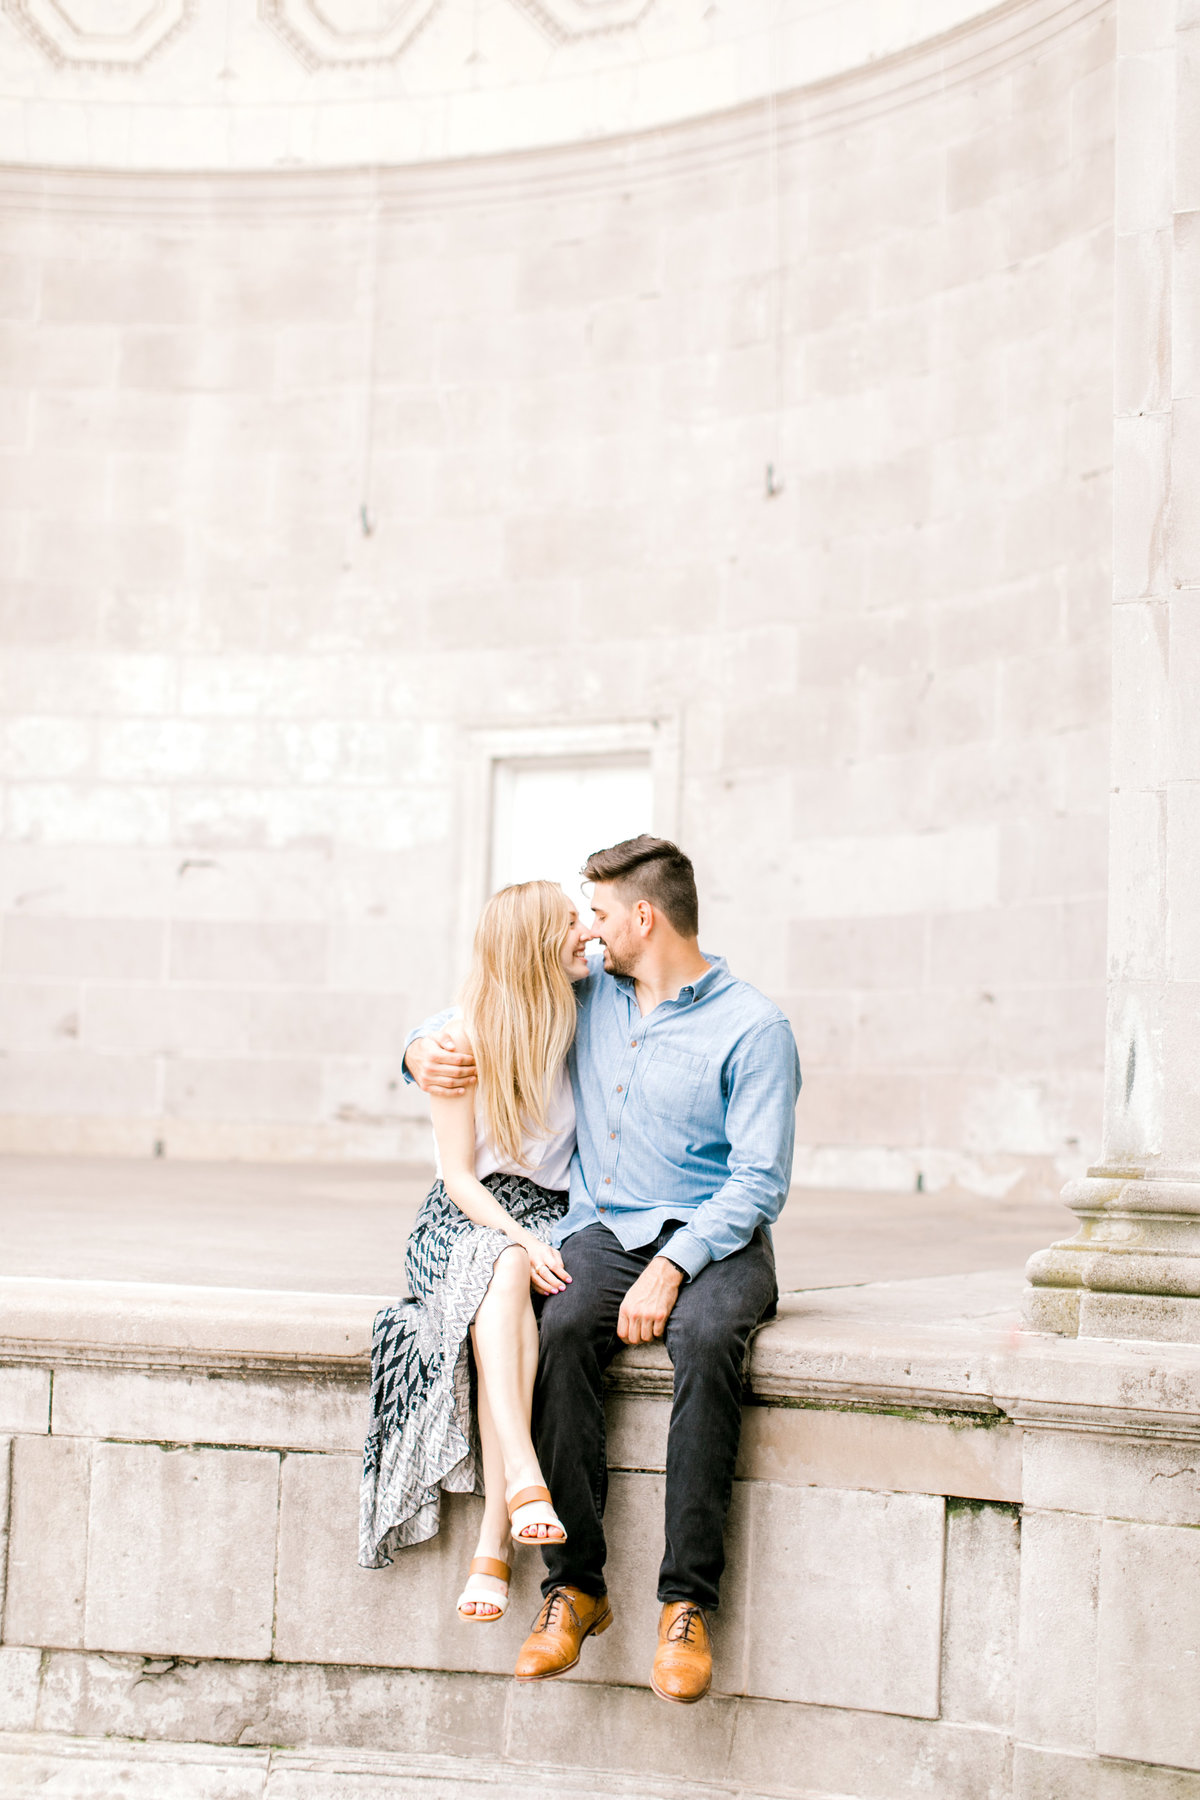 Melanie Foster Photography - Norman Oklahoma Senior and Engagement Photographer - Couple Engagement Photo - 49